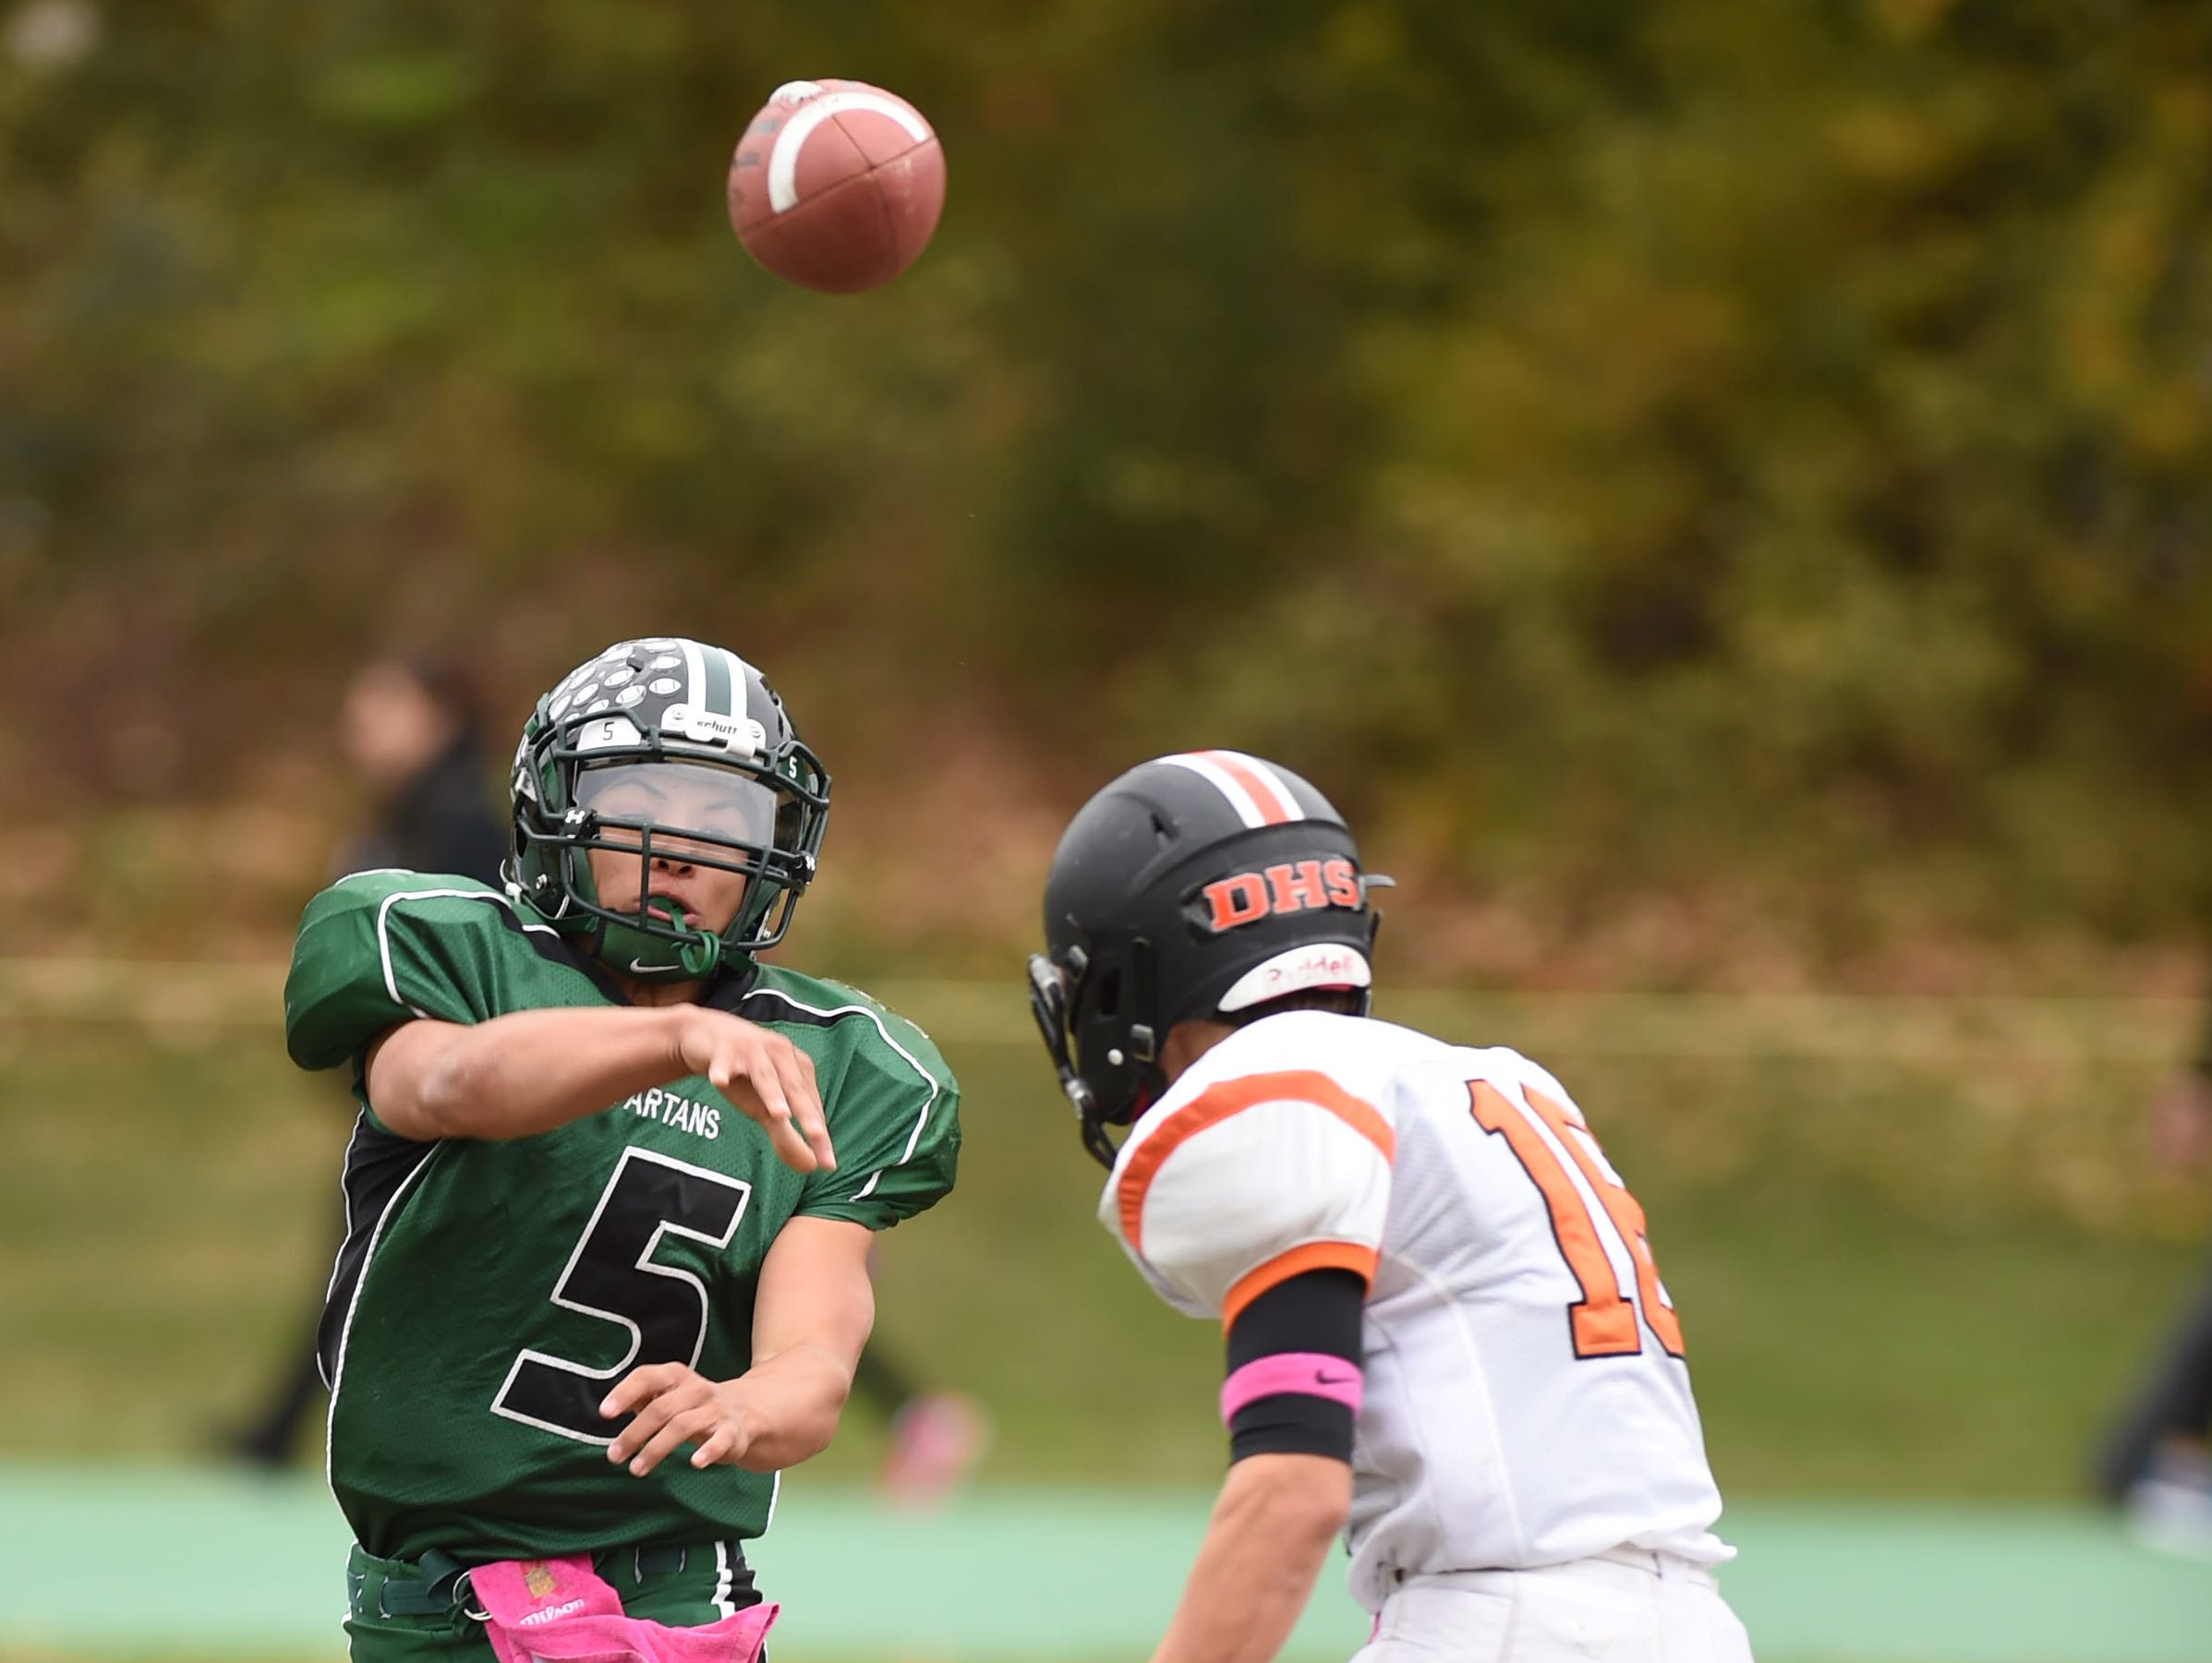 Spackenkill's Camron Abalos pass the ball as Dover's Russell Bradshaw closes in on him during Saturday's game in Poughkeepsie.